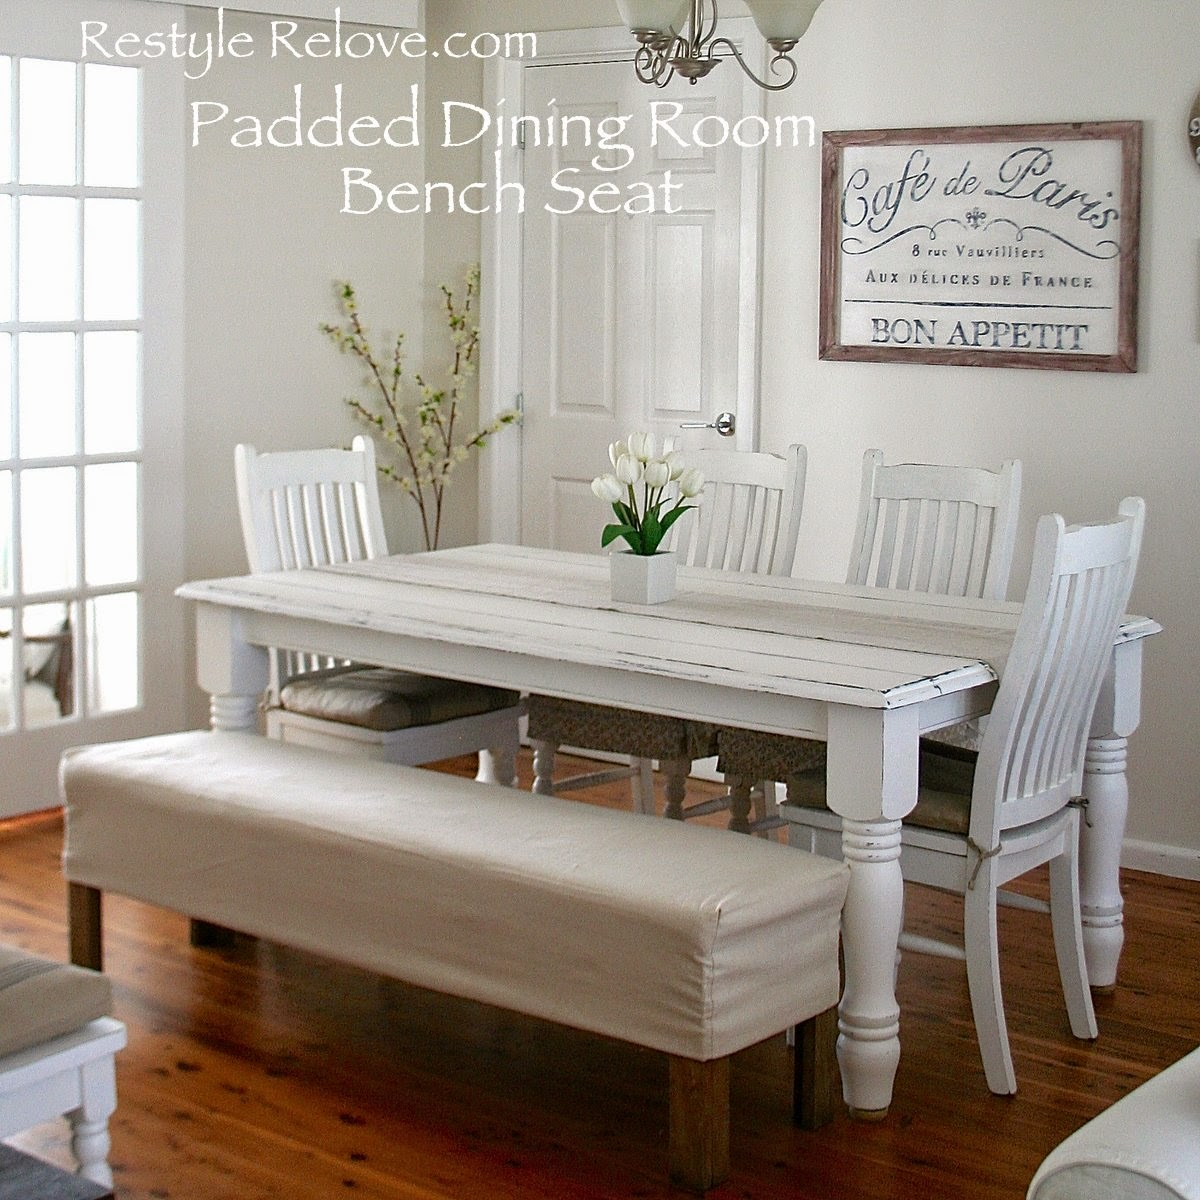 Dining Room Inexpensive Dining Room Table With Bench And: Padded Dining Room Bench Seat With Removable Washable Drop